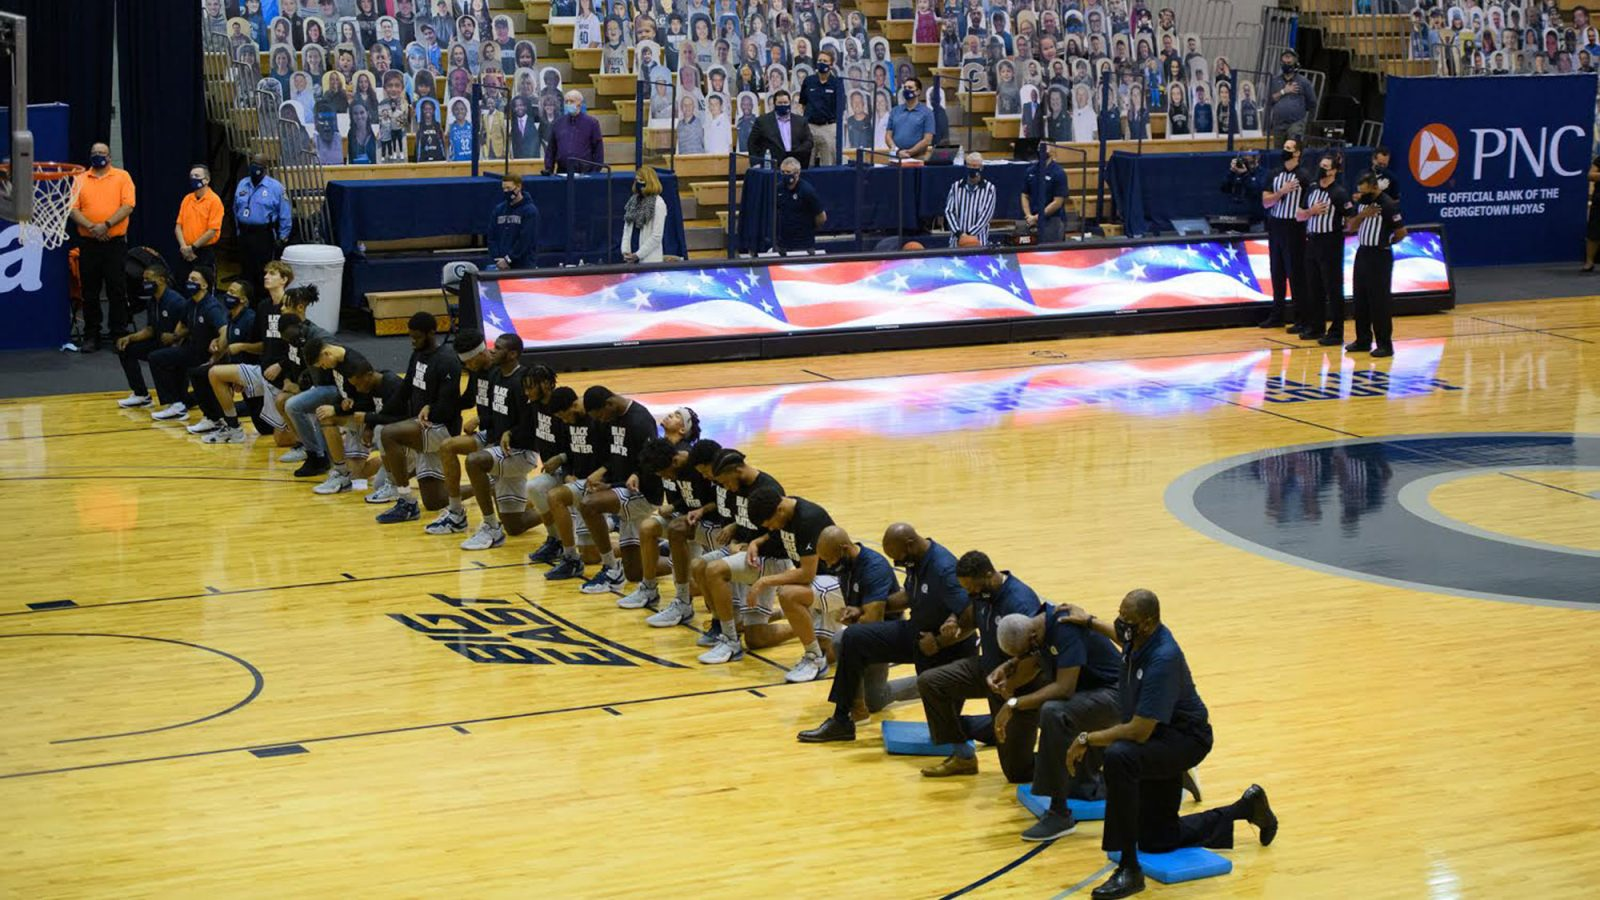 Basketball players kneel on the court before their game.